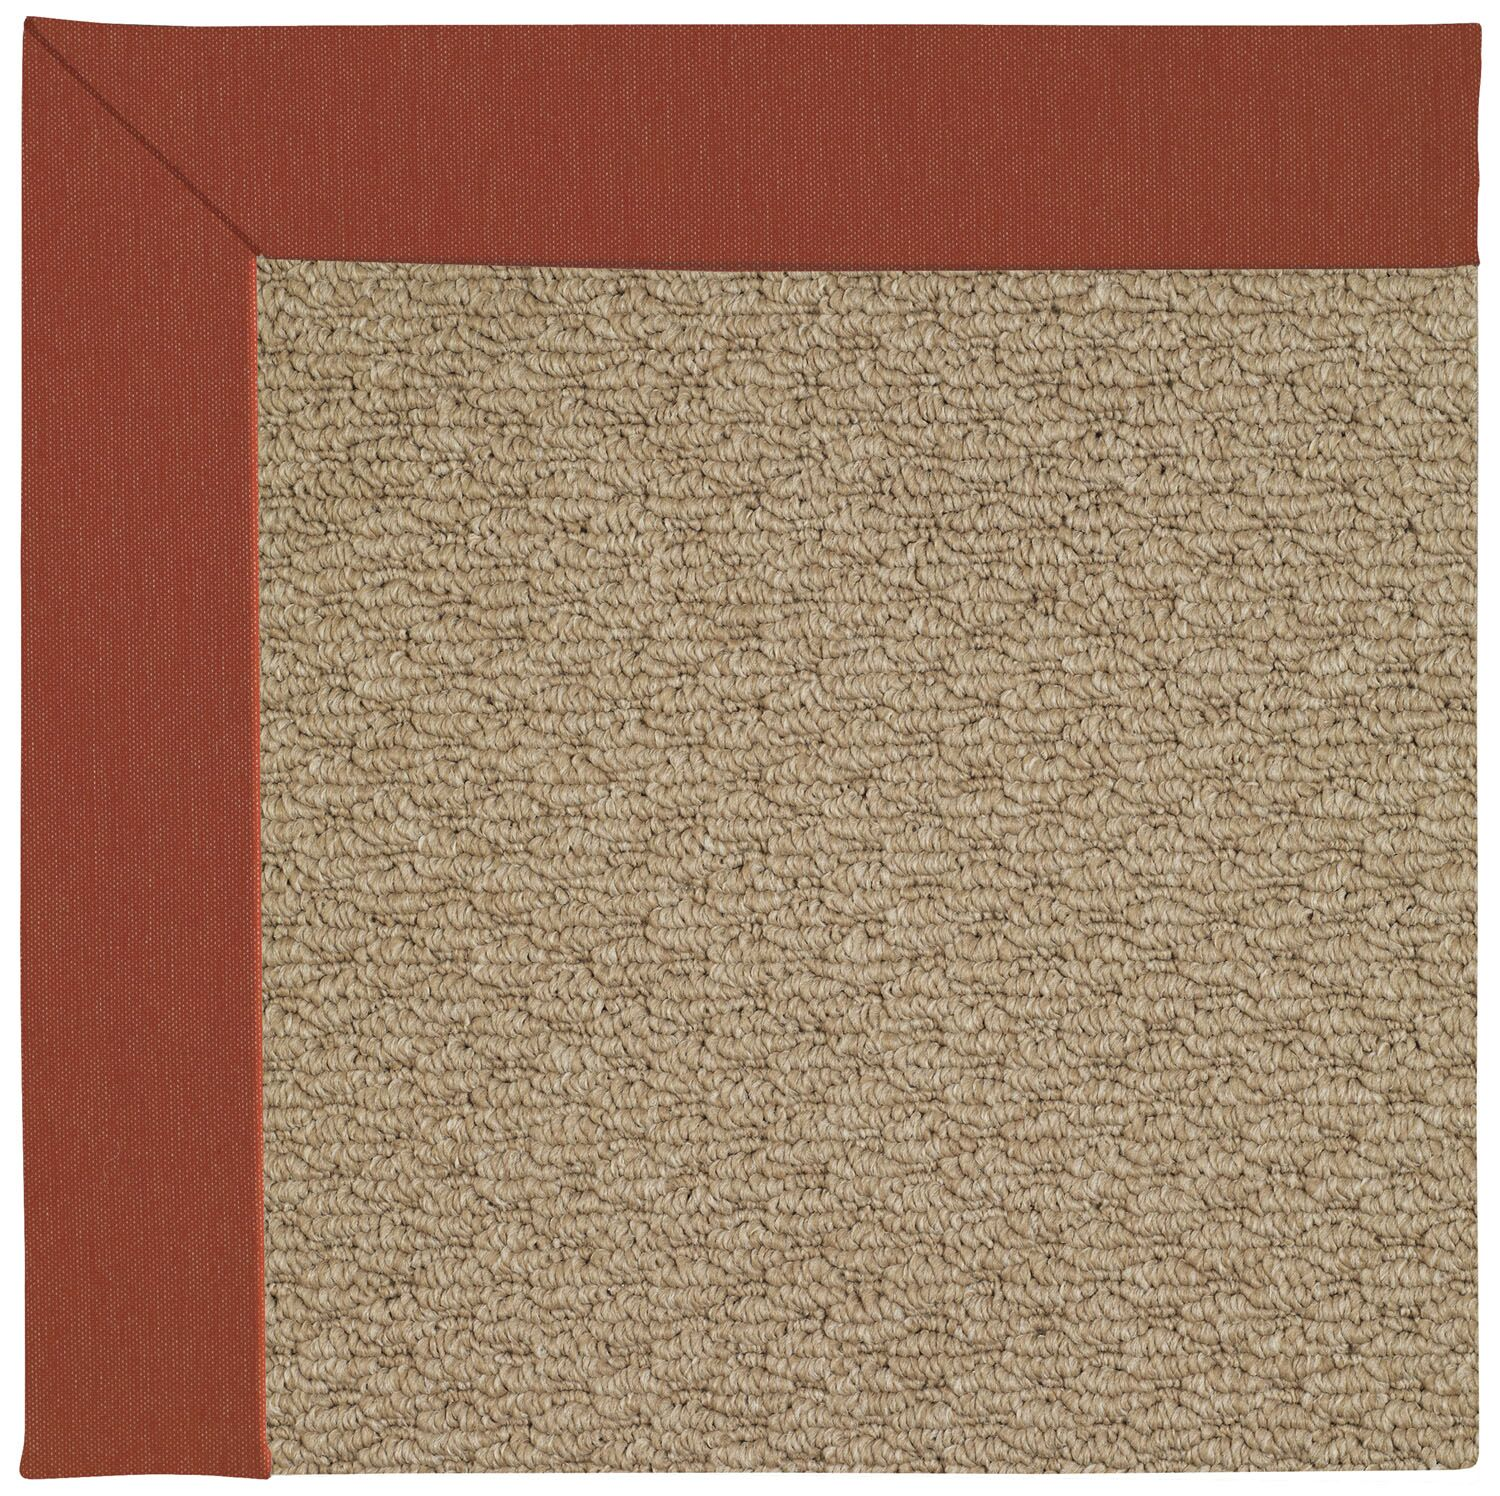 Lisle Machine Tufted Red/Brown Indoor/Outdoor Area Rug Rug Size: Square 6'